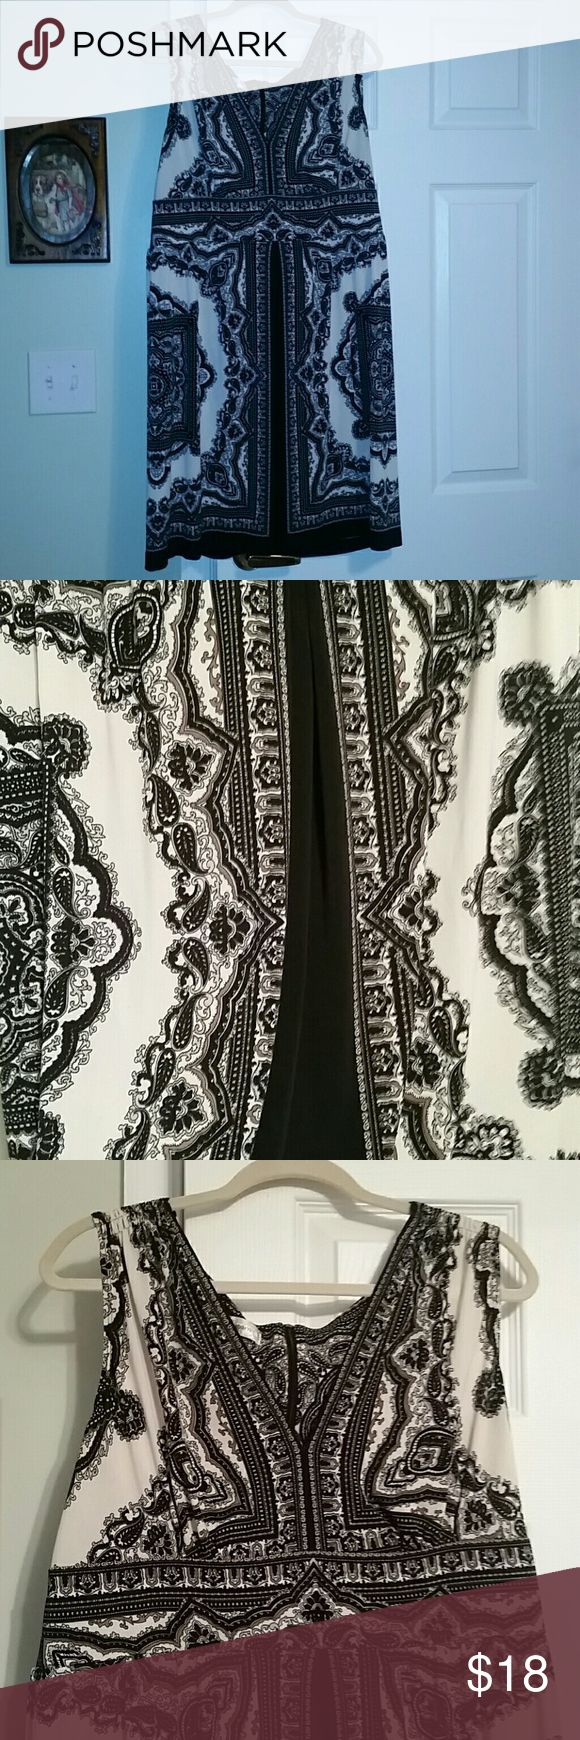 Dressbarn dress Excellent condition black and cream zips up back hides problem areas Dress Barn Dresses